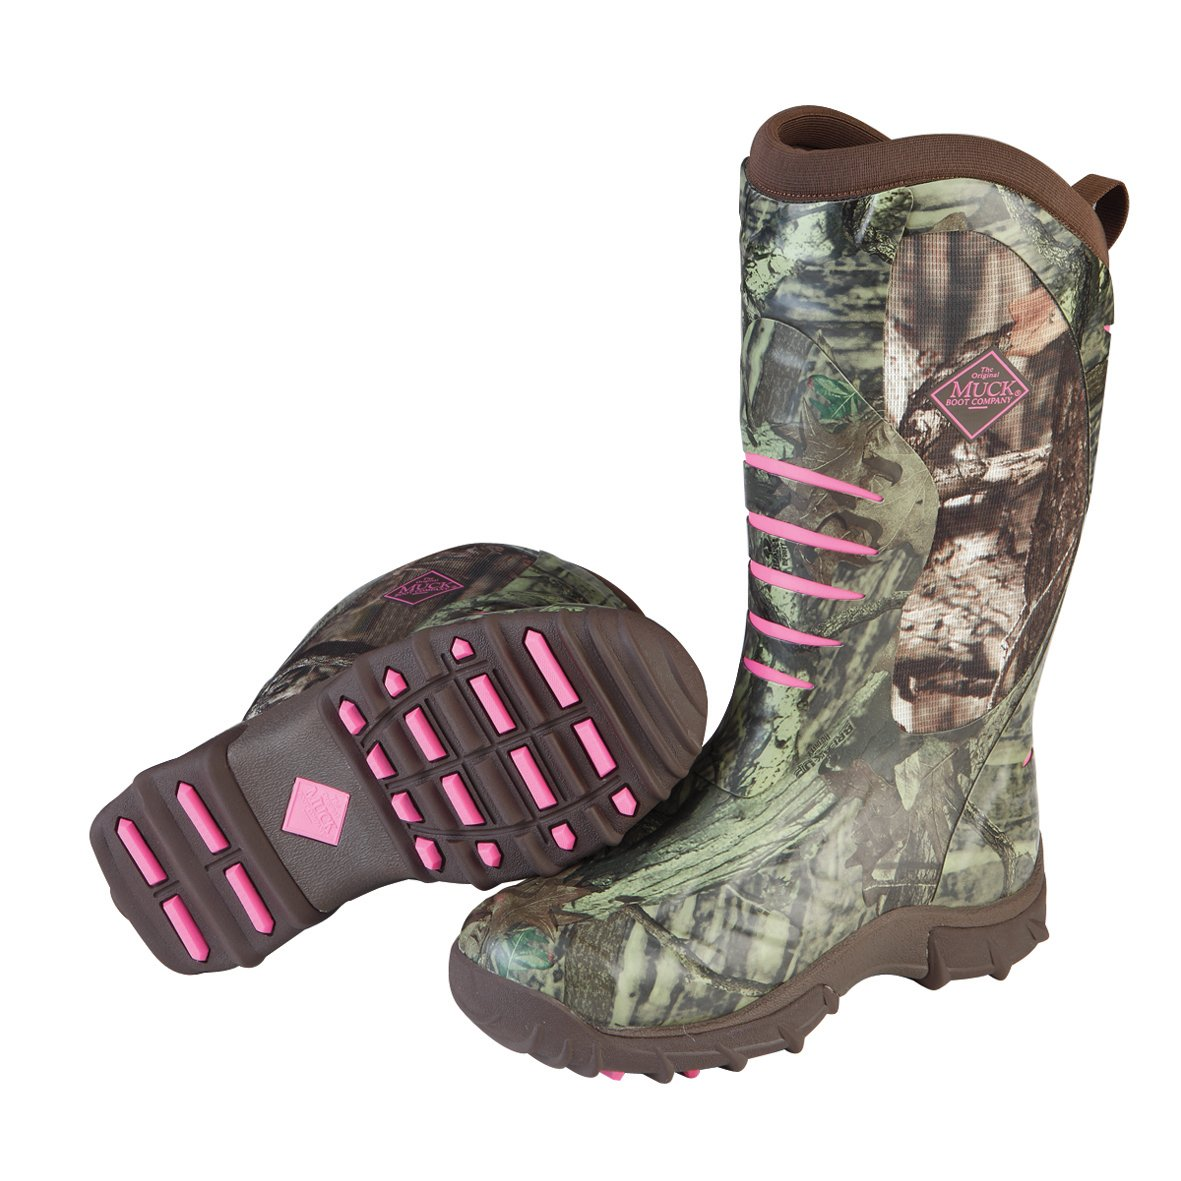 Muck Boot Womens Pursuit Stealth Hunting Shoes, Realtree/Pink, 8 US/8-8.5 M US by Muck Boot